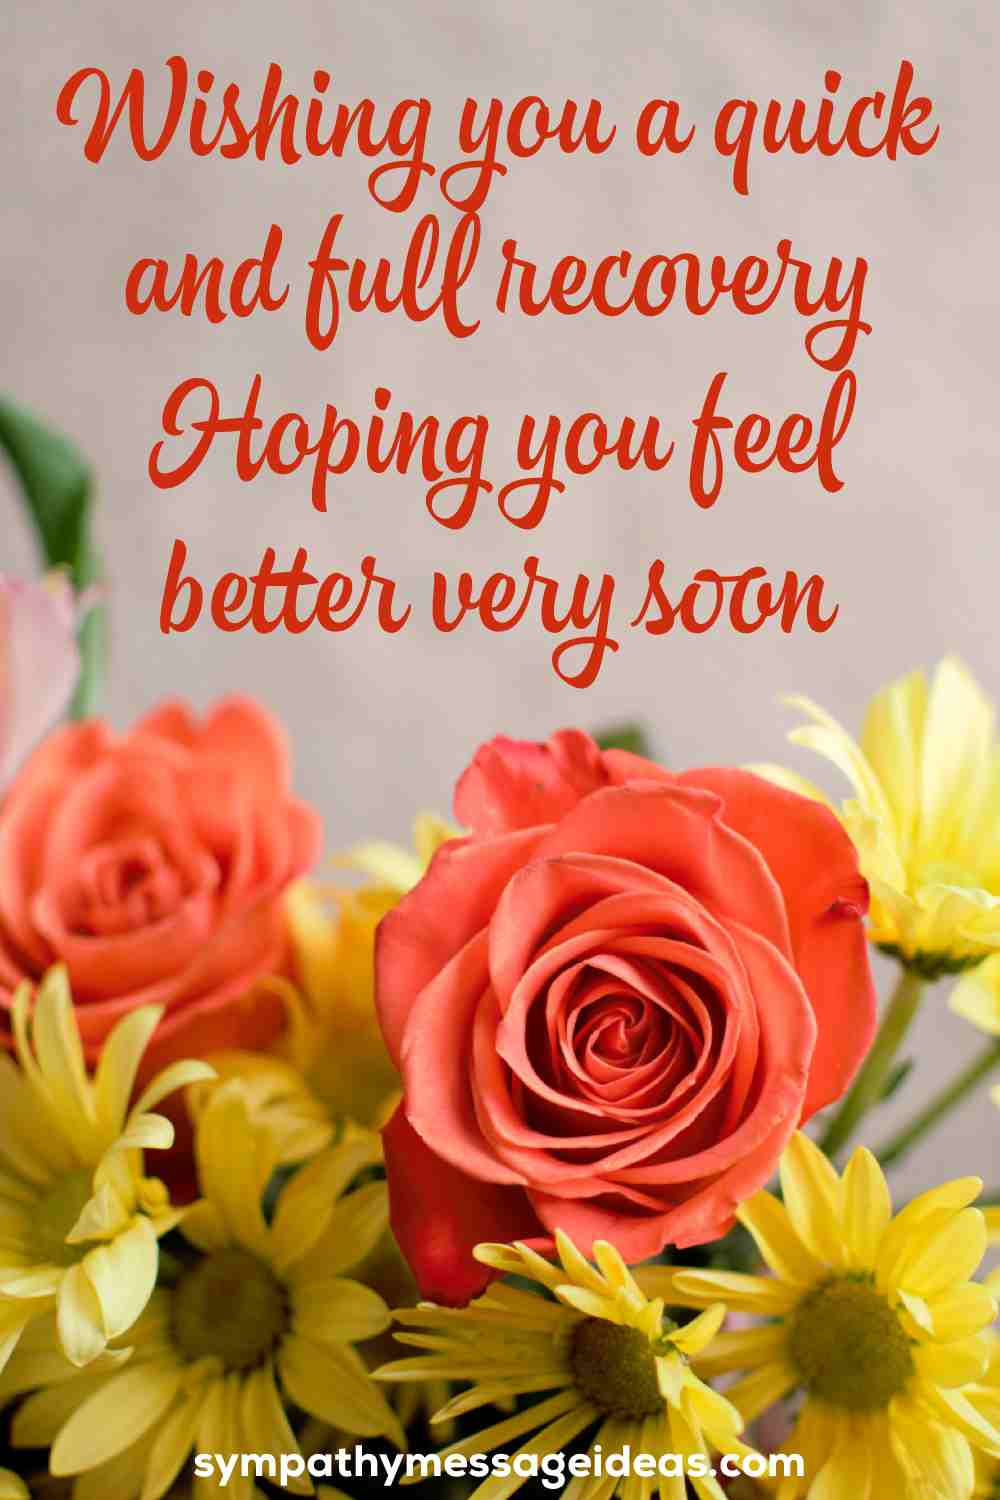 wishing you a quick and full recovery